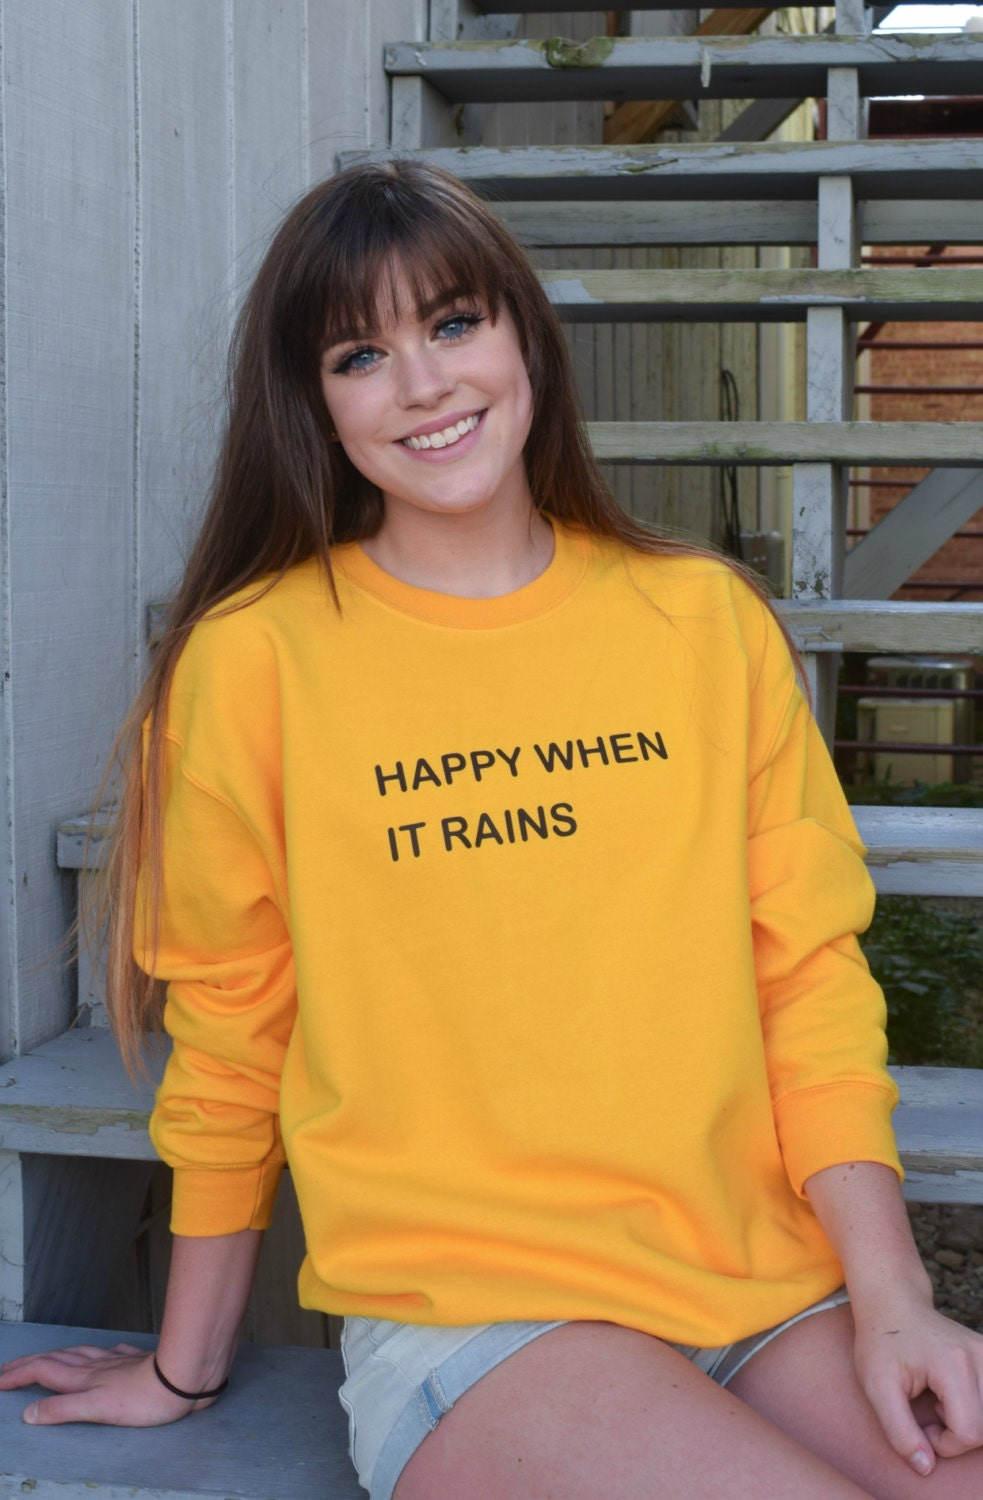 Happy When it Rains Tumblr Saying Fall Sweater In Yellow and